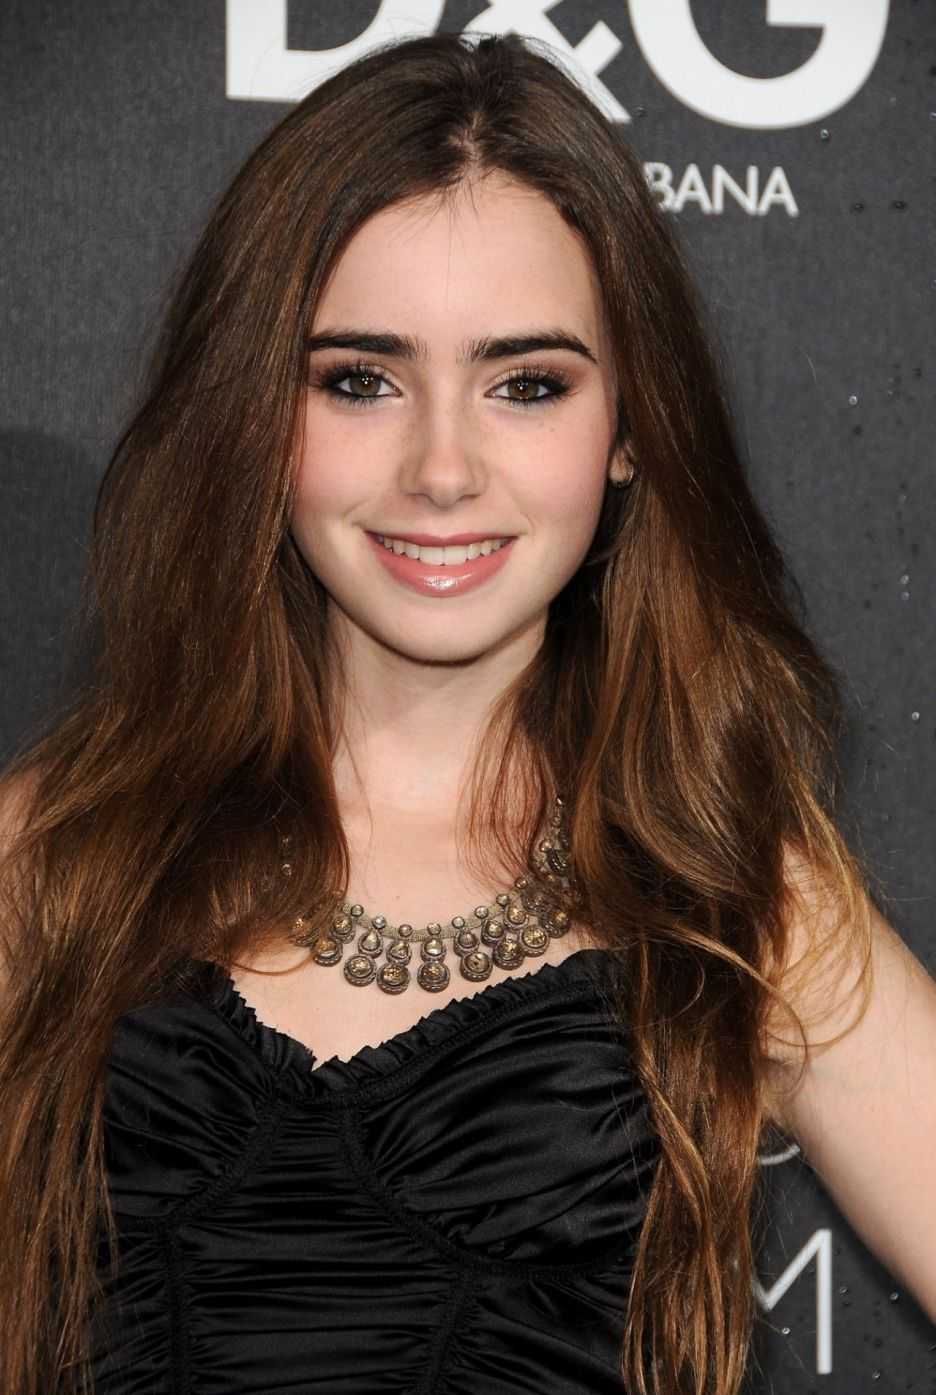 lily collins 2017lily collins i believe in love, lily collins gif, lily collins vk, lily collins i believe in love скачать, lily collins 2016, lily collins png, lily collins films, lily collins and sam claflin, lily collins 2017, lily collins book, lily collins boyfriend, lily collins style, lily collins tumblr, lily collins фильмы, lily collins песни, lily collins makeup, lily collins wallpaper, lily collins gif hunt, lily collins site, lily collins gallery